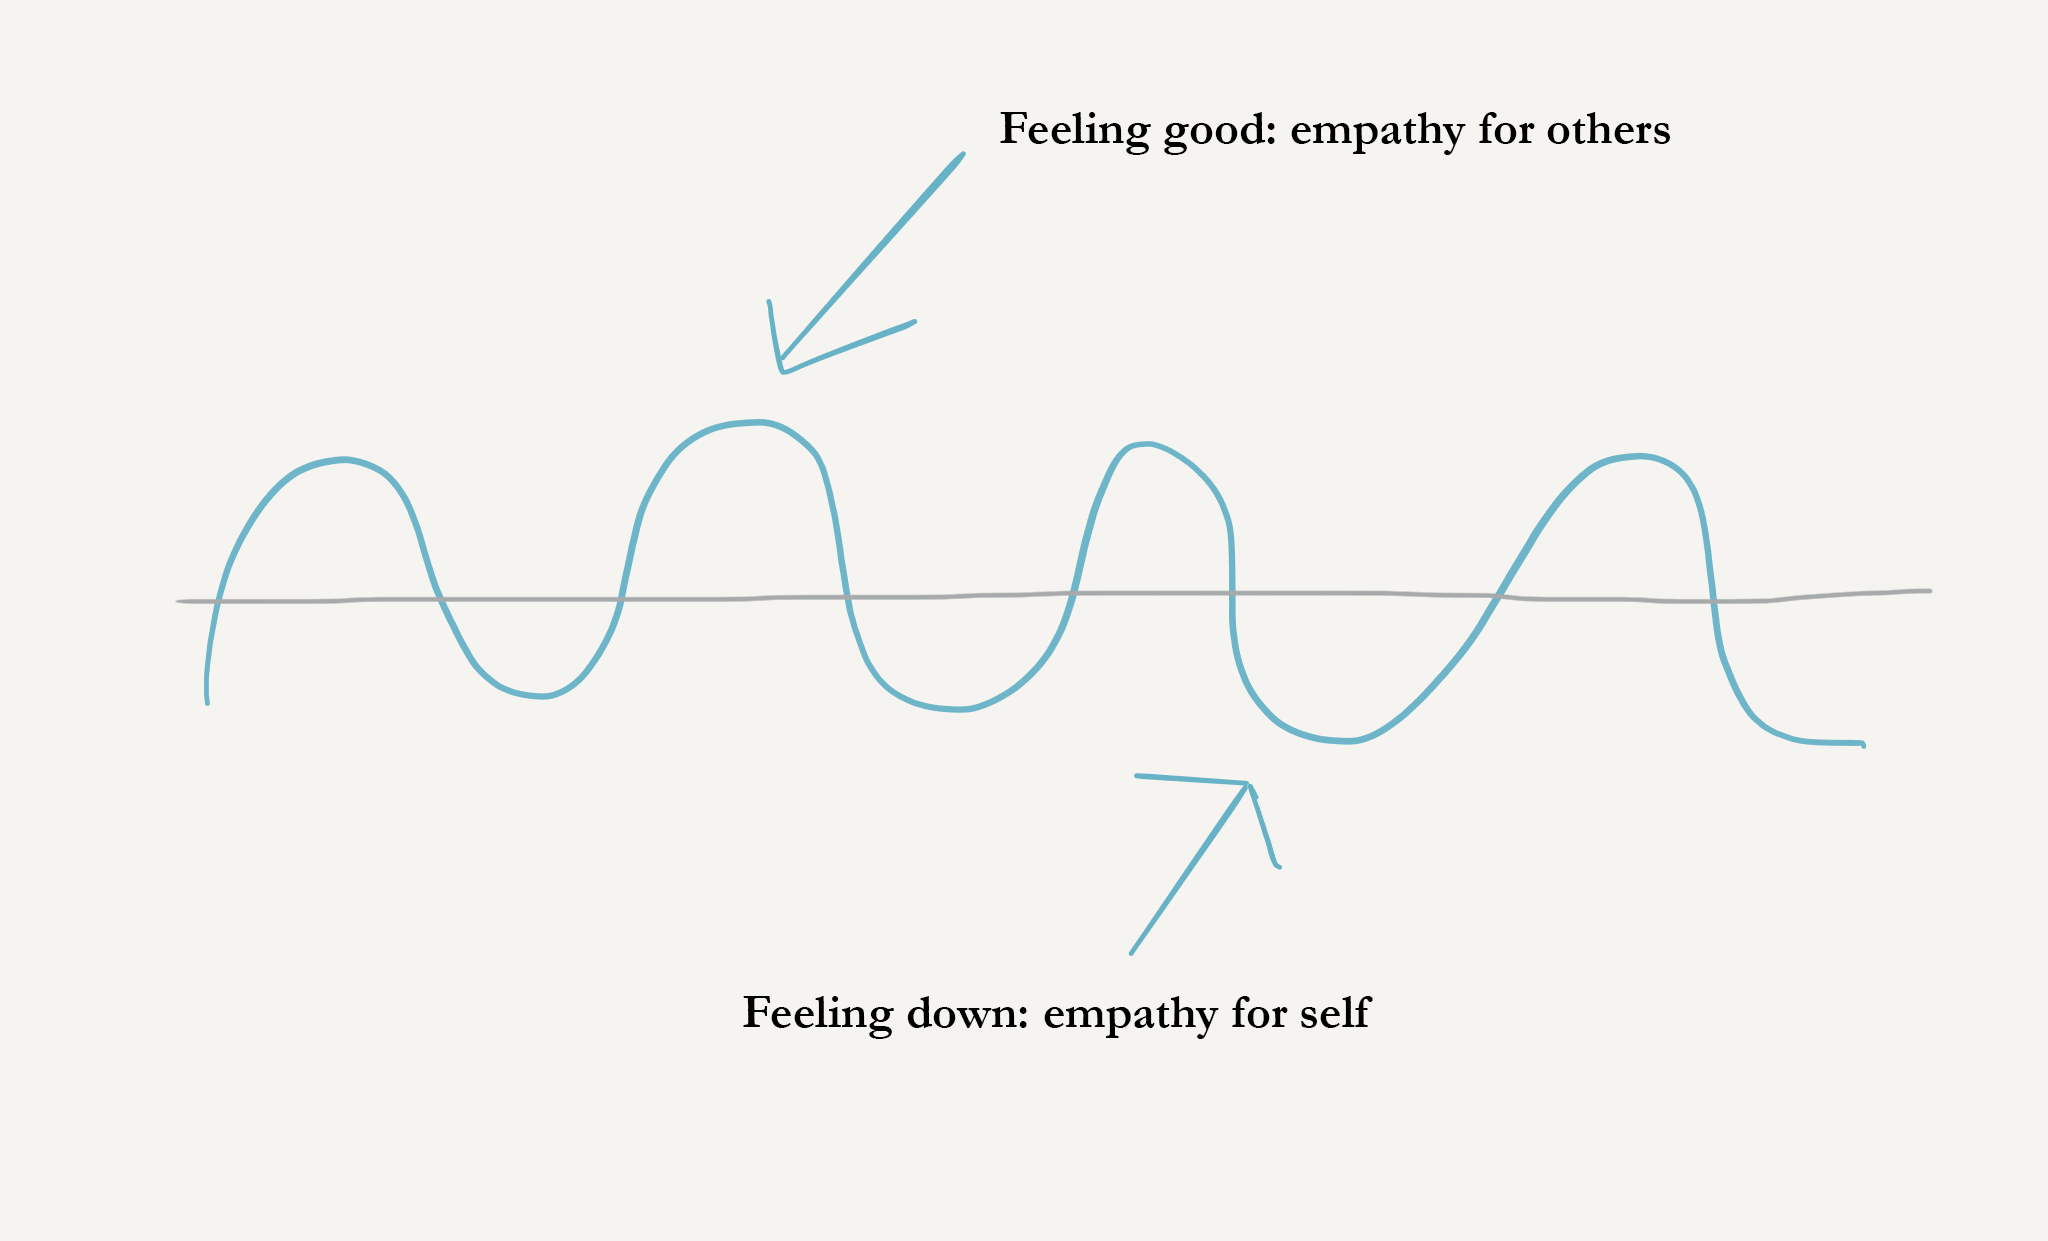 An oscillating wave with arrows pointing to highs and lows. Feeling good: empathy for others. Feeling down: empathy for self.